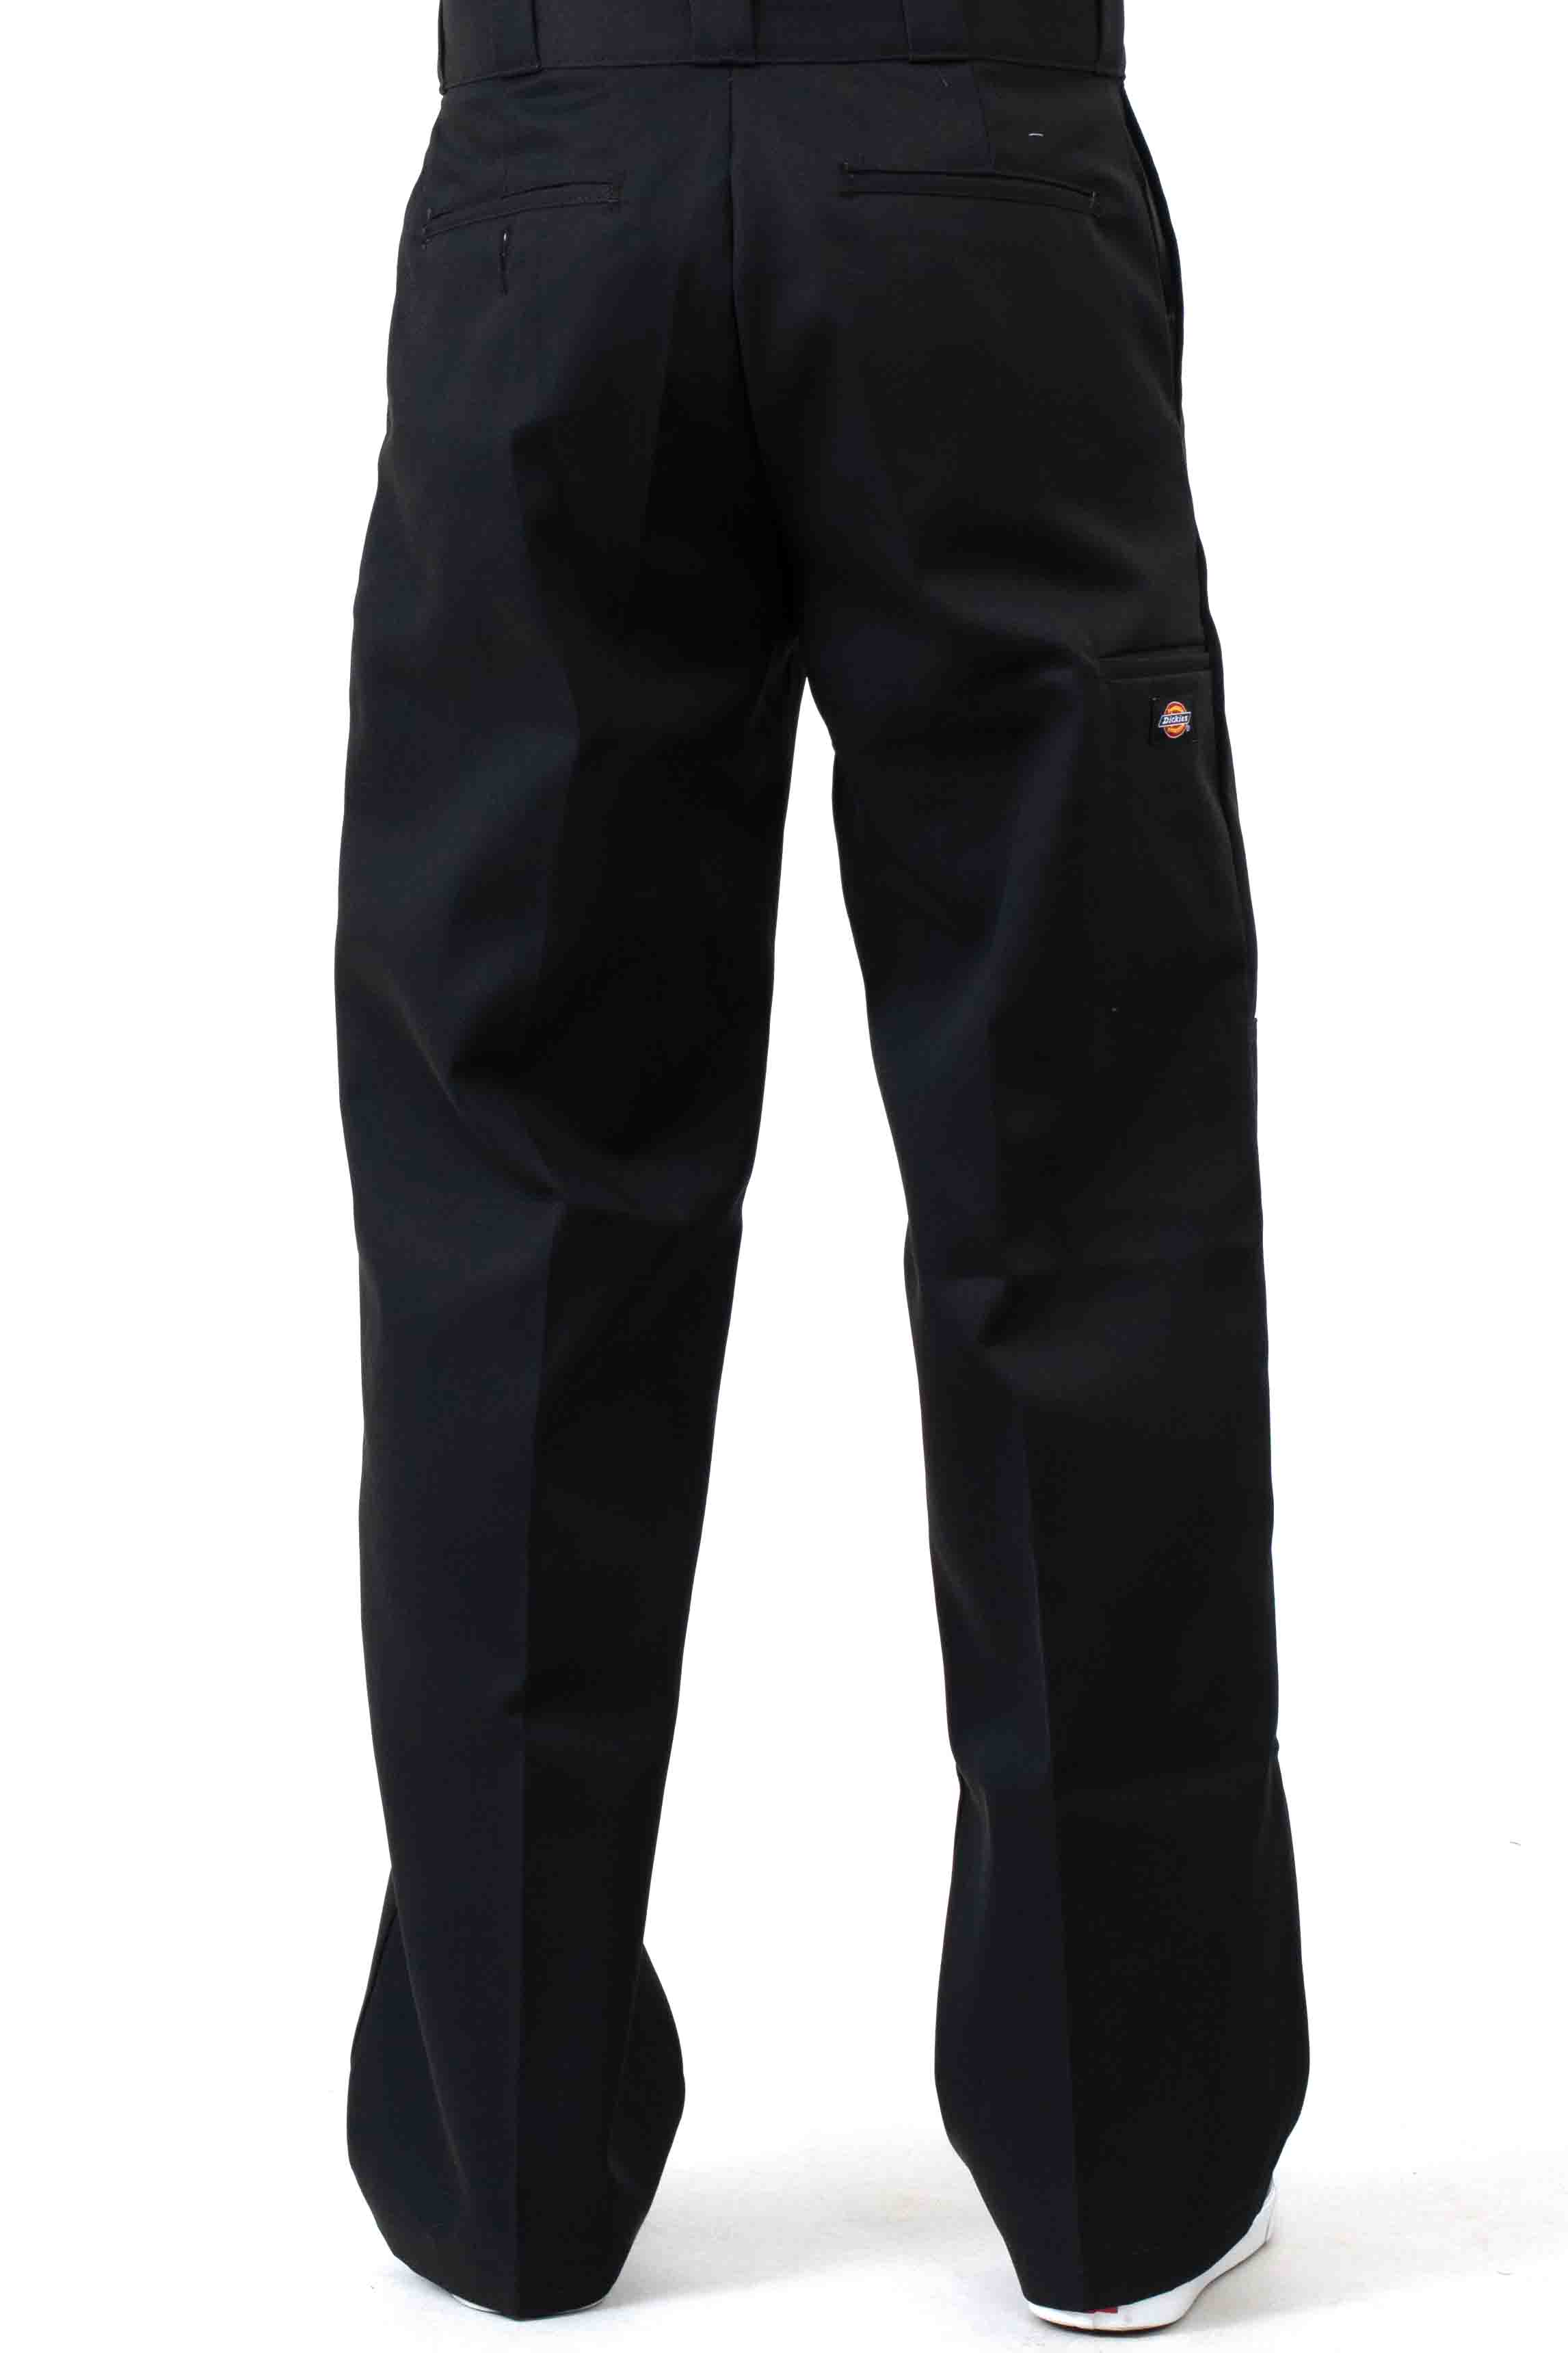 (WP852BK) Relaxed Fit Straight Leg Double Knee Pants - Black 3